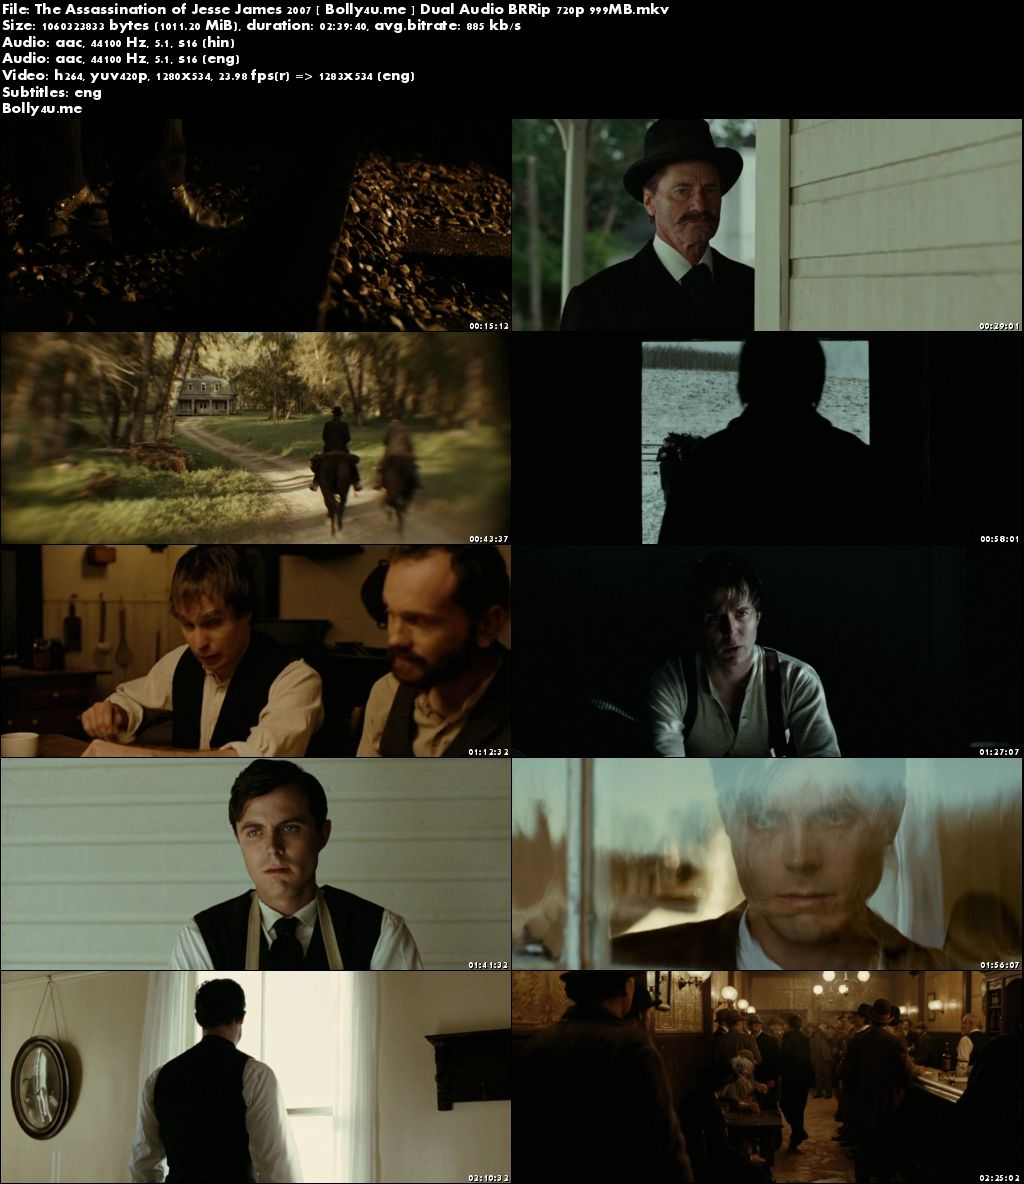 The Assassination of Jesse James 2007 BRRip 999Mb Hindi Dual Audio 720p Download